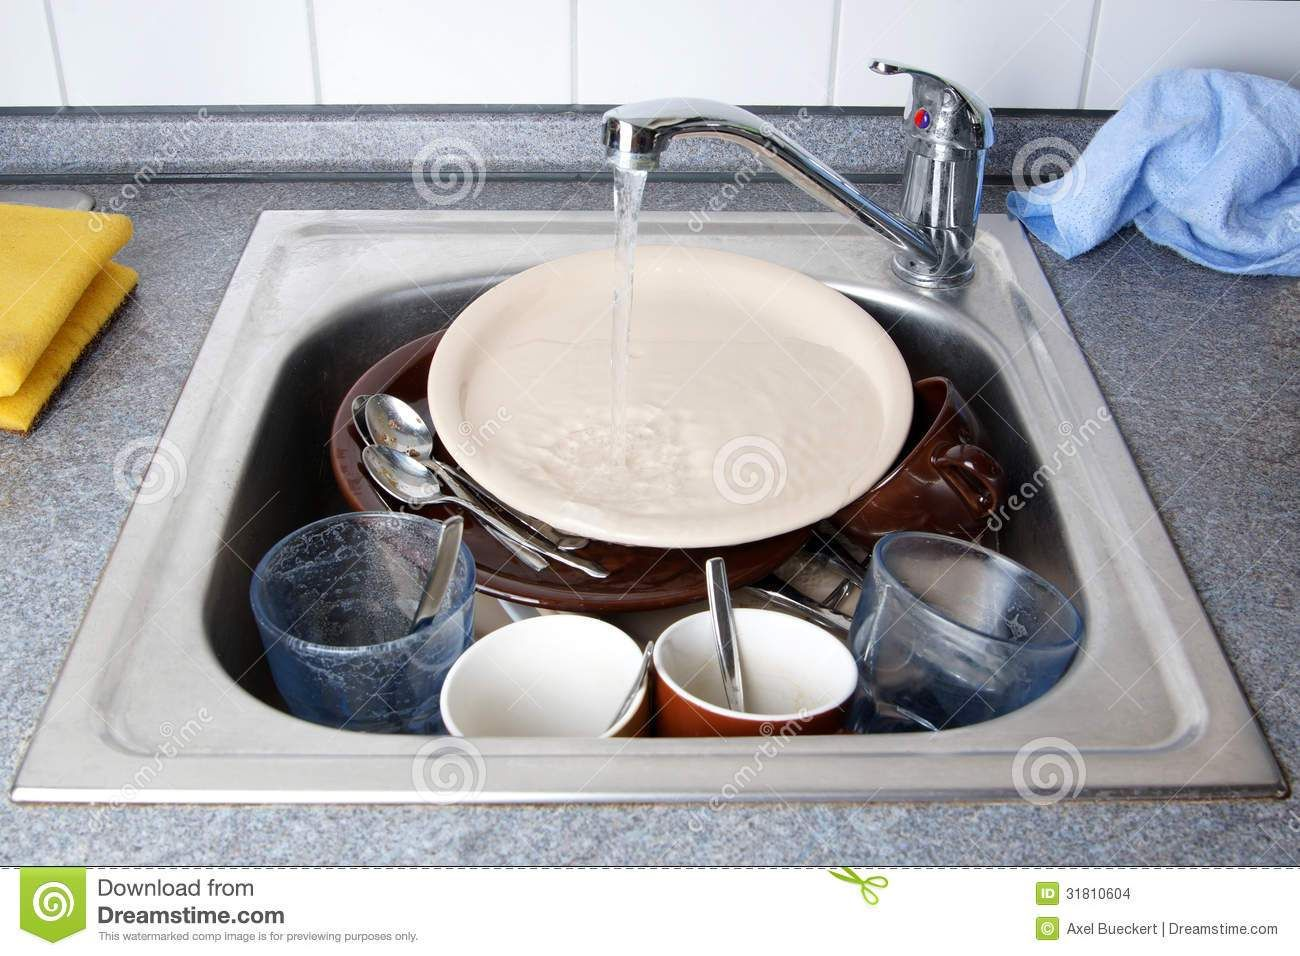 pile dirty dishes kitchen sink running water dishes sink clip art ...